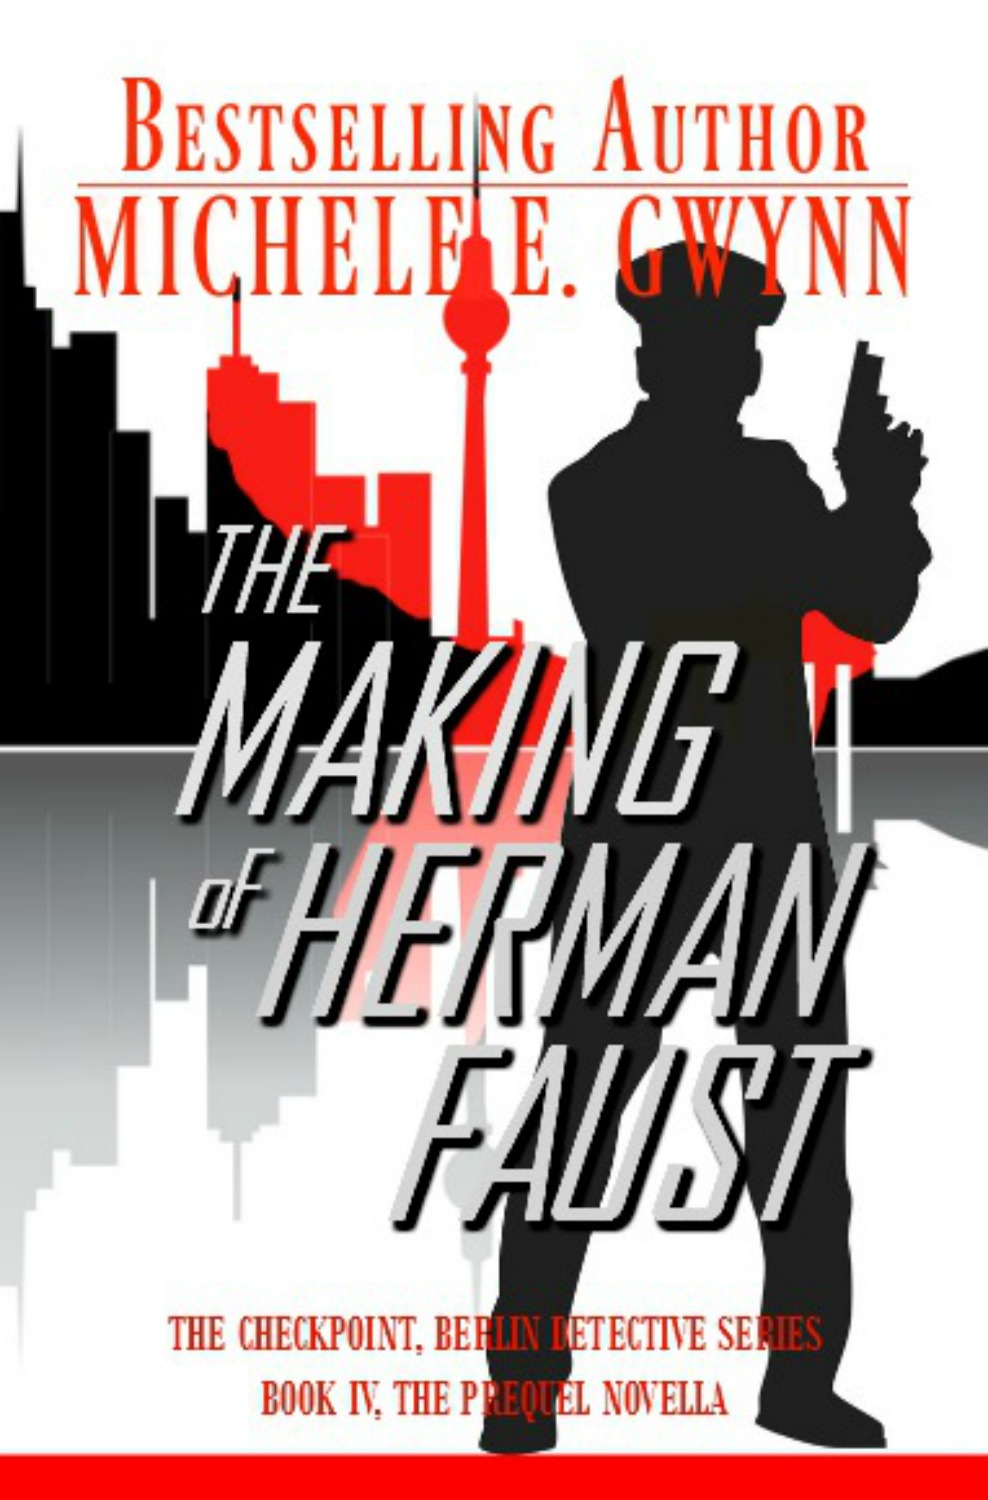 The Making of Herman Faust, The Checkpoint, Berlin Detective Series Book 4 by Michele E. Gwynn